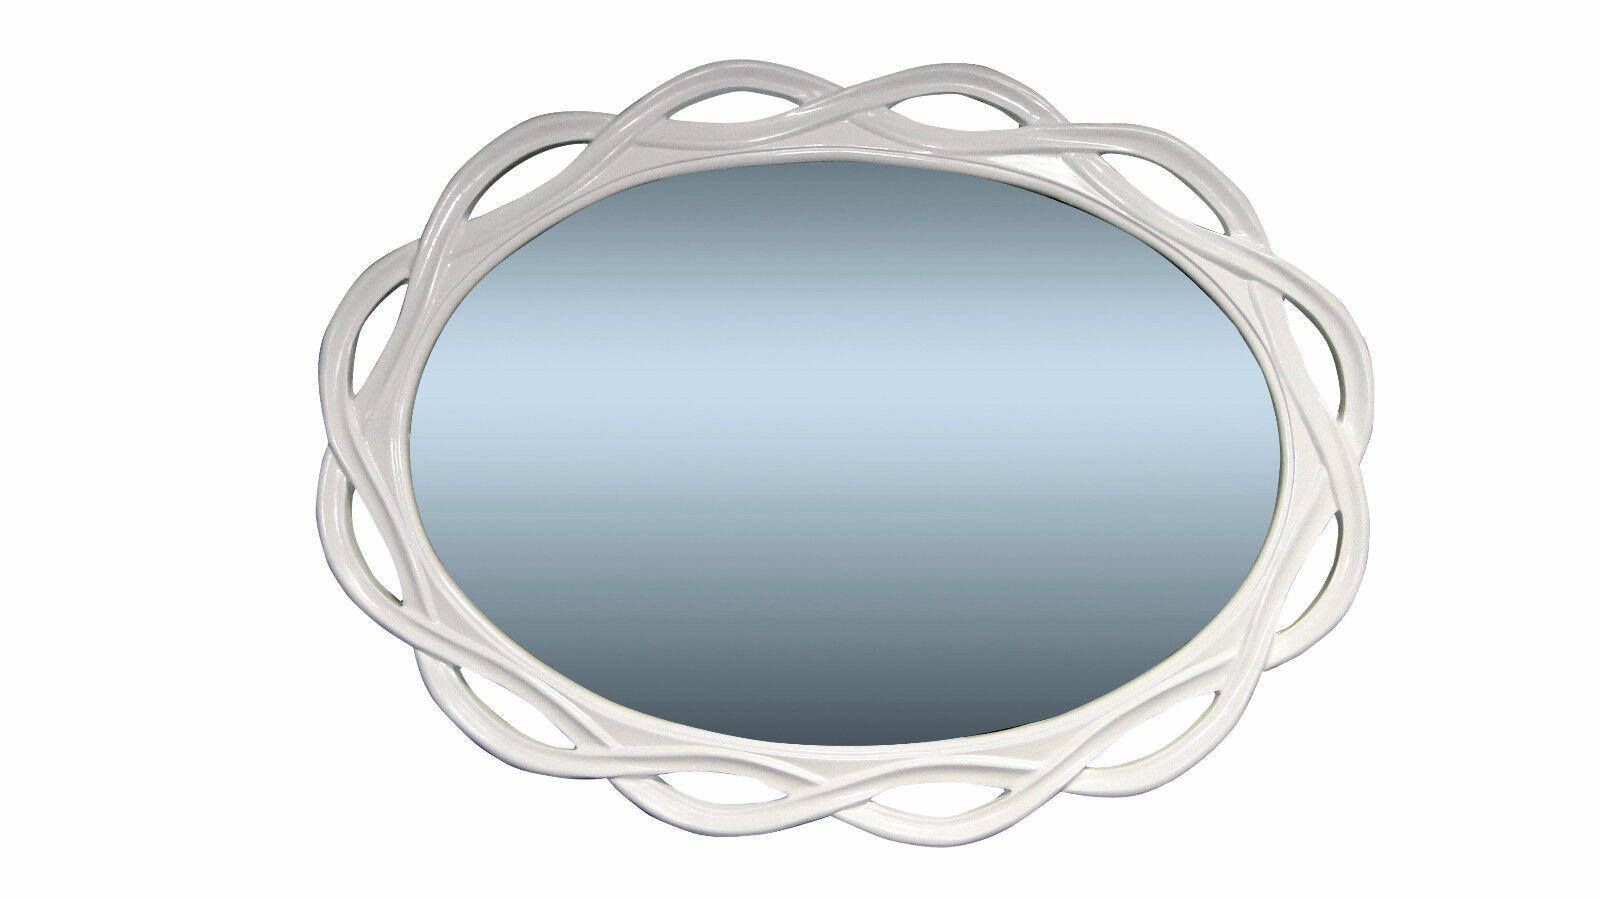 grosser wandspiegel gold spiegel oval 120 x 90 cm flurspiegel mirror ebay. Black Bedroom Furniture Sets. Home Design Ideas